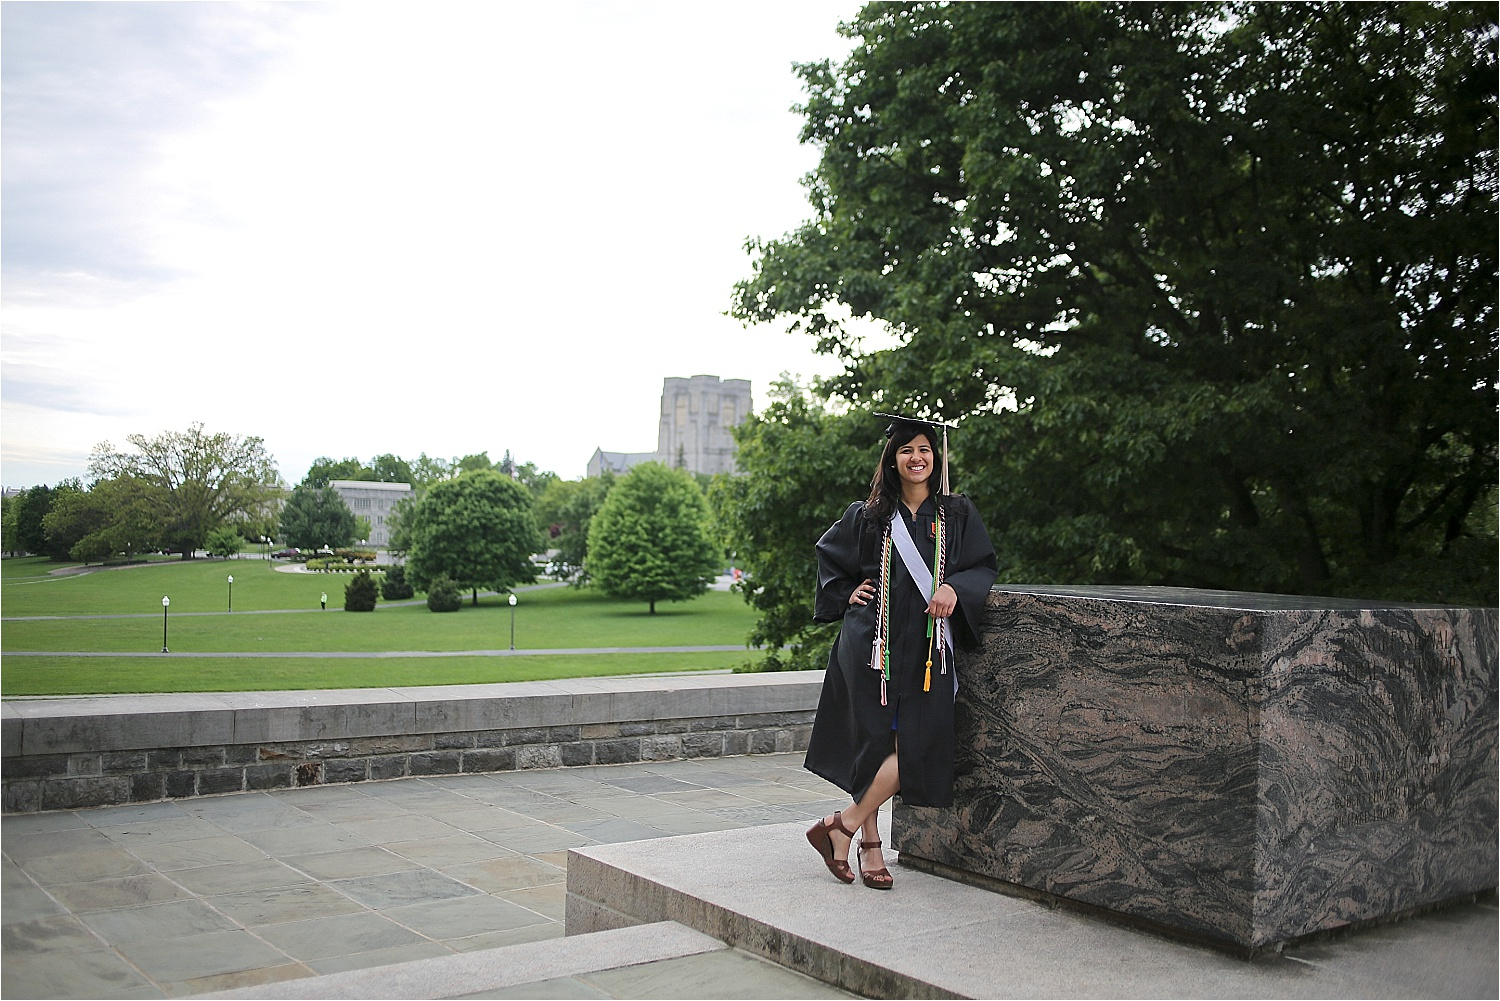 Blacksburg-Virginia-Tech-Senior-Portrait-Graduation-Photographer-_0008.jpg